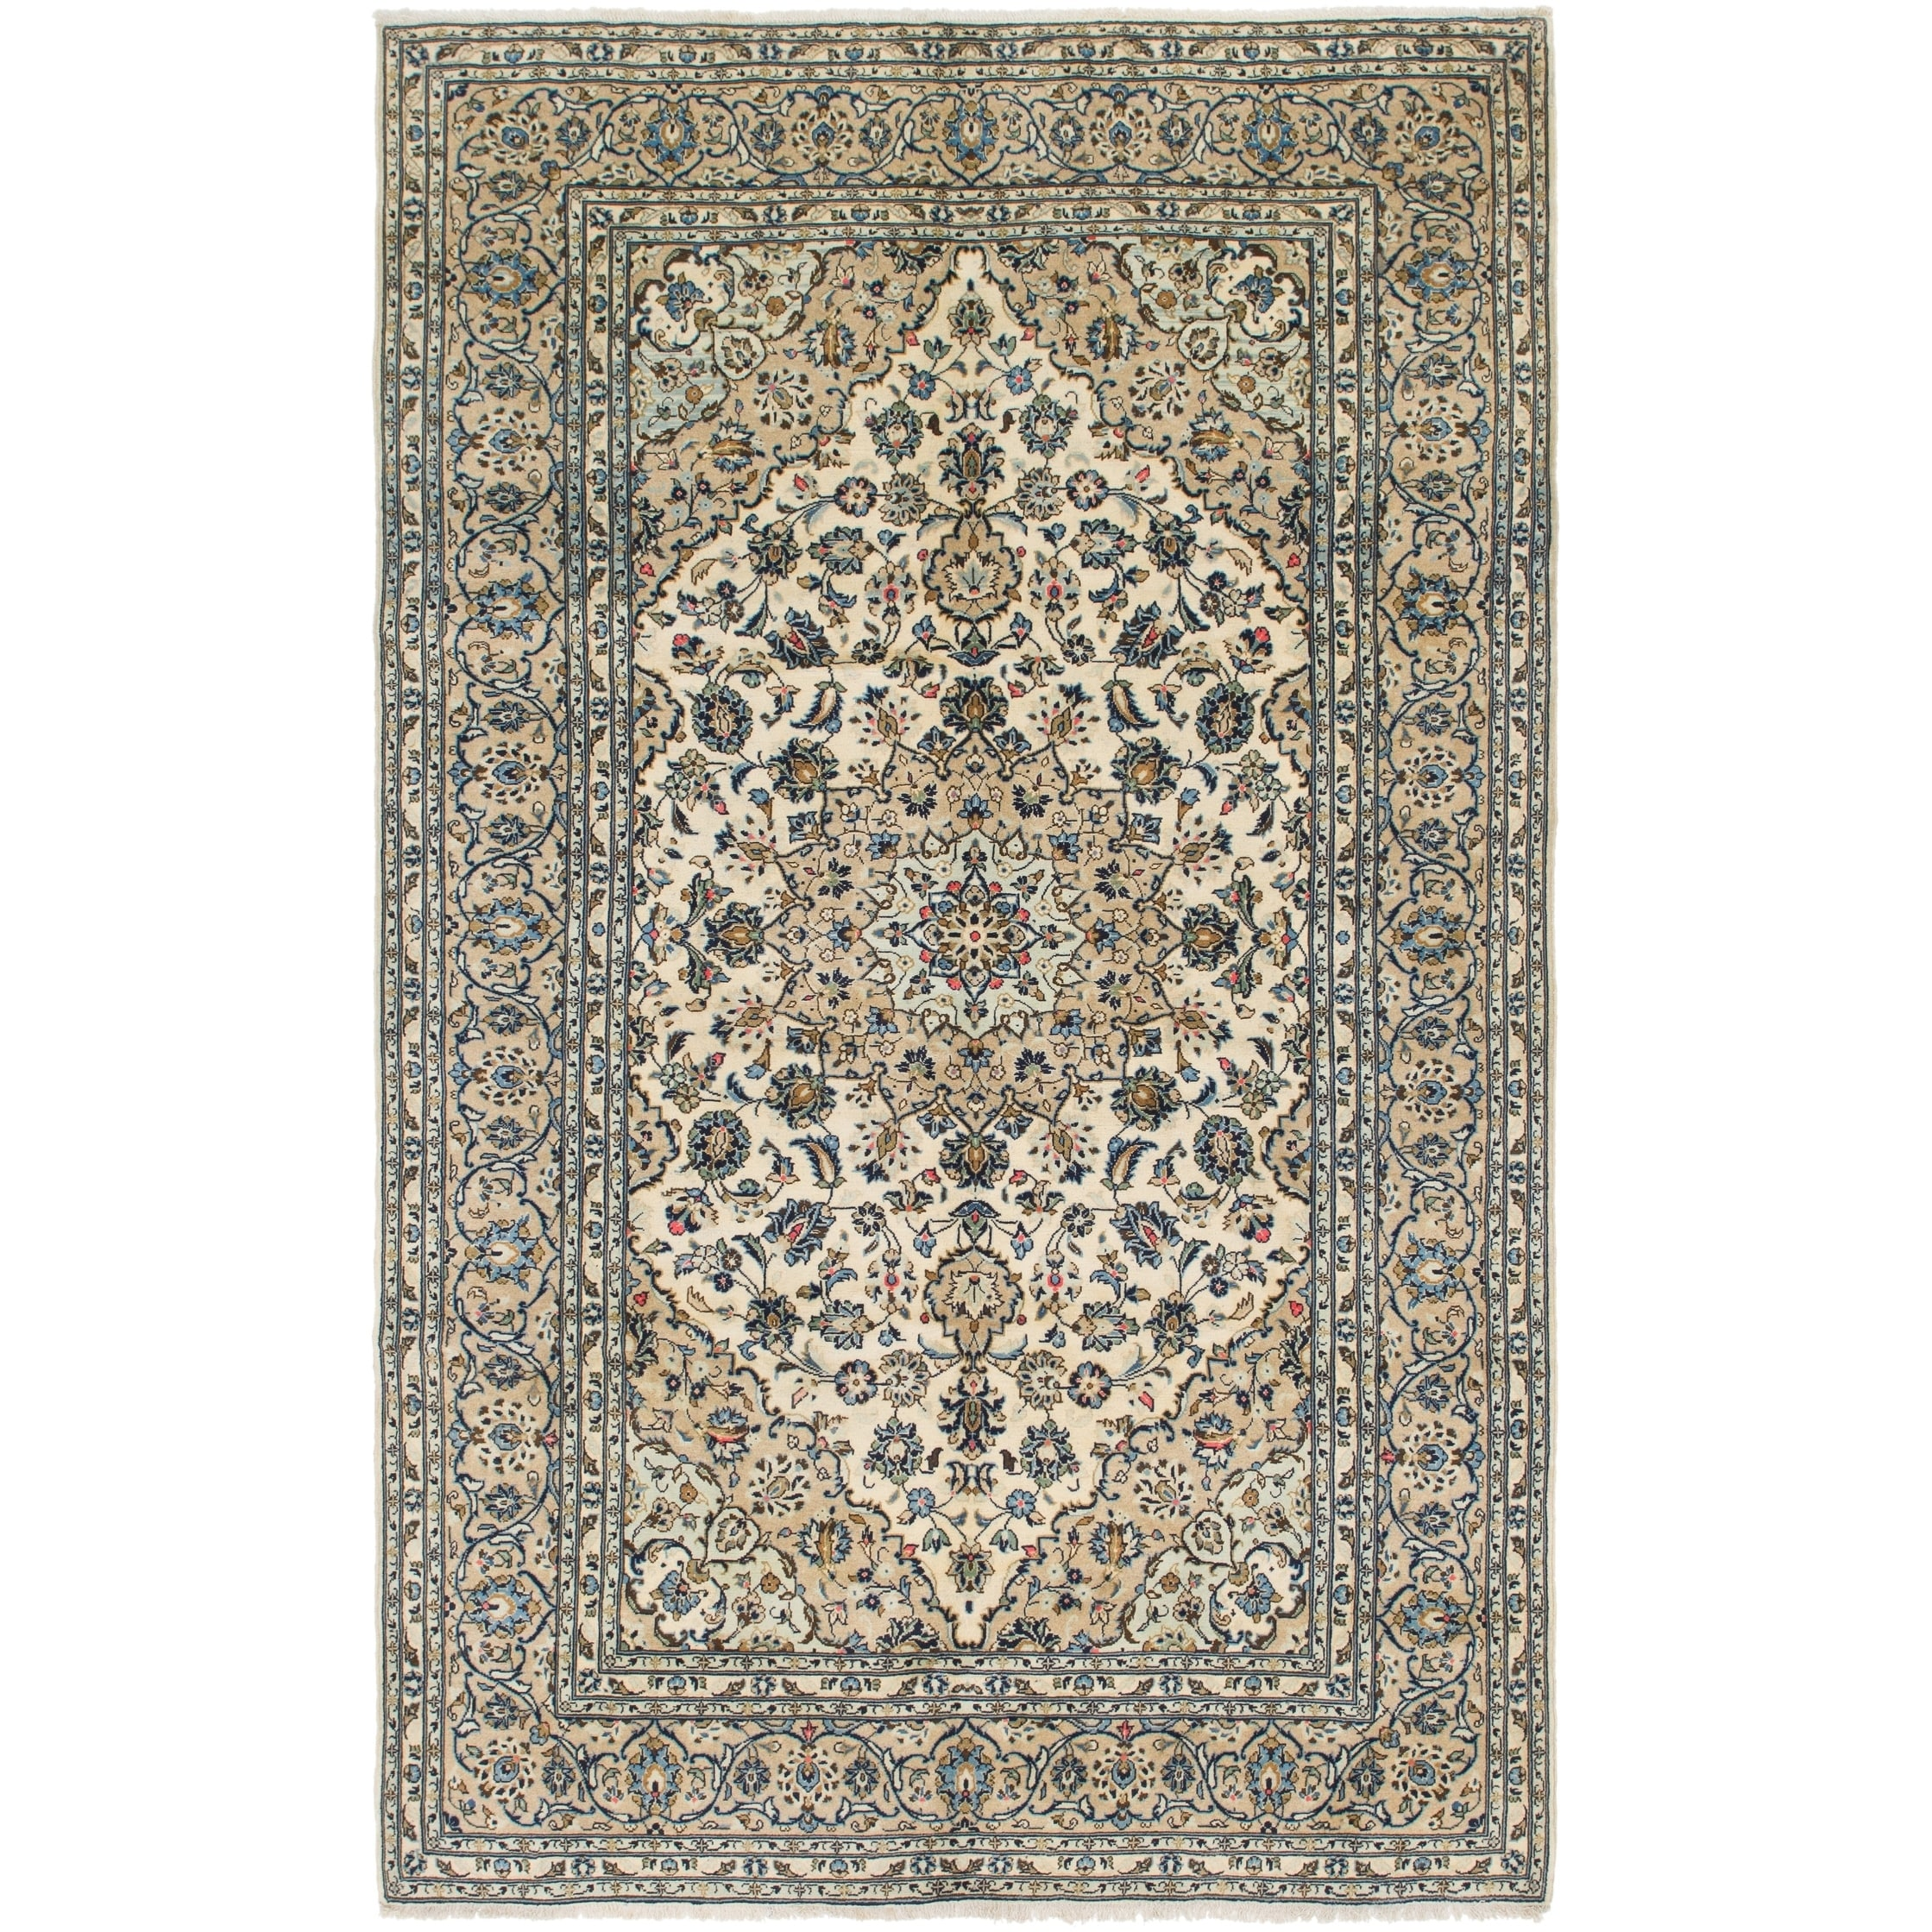 Hand Knotted Kashan Semi Antique Wool Area Rug - 6 6 x 10 3 (Ivory - 6 6 x 10 3)